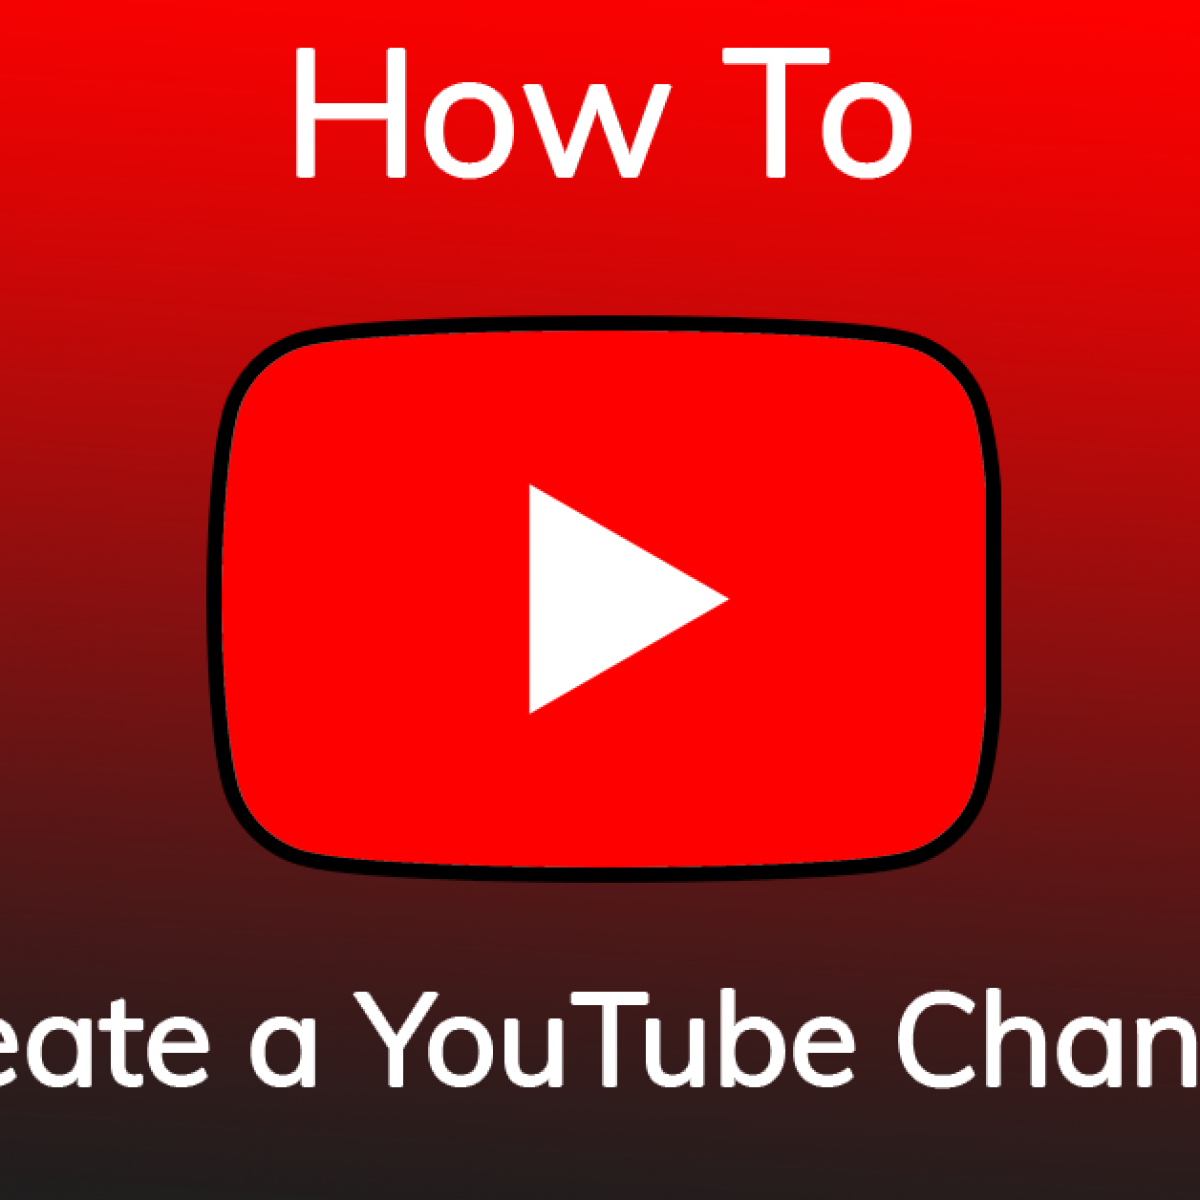 How to Create a YouTube Channel in Under 5 Minutes